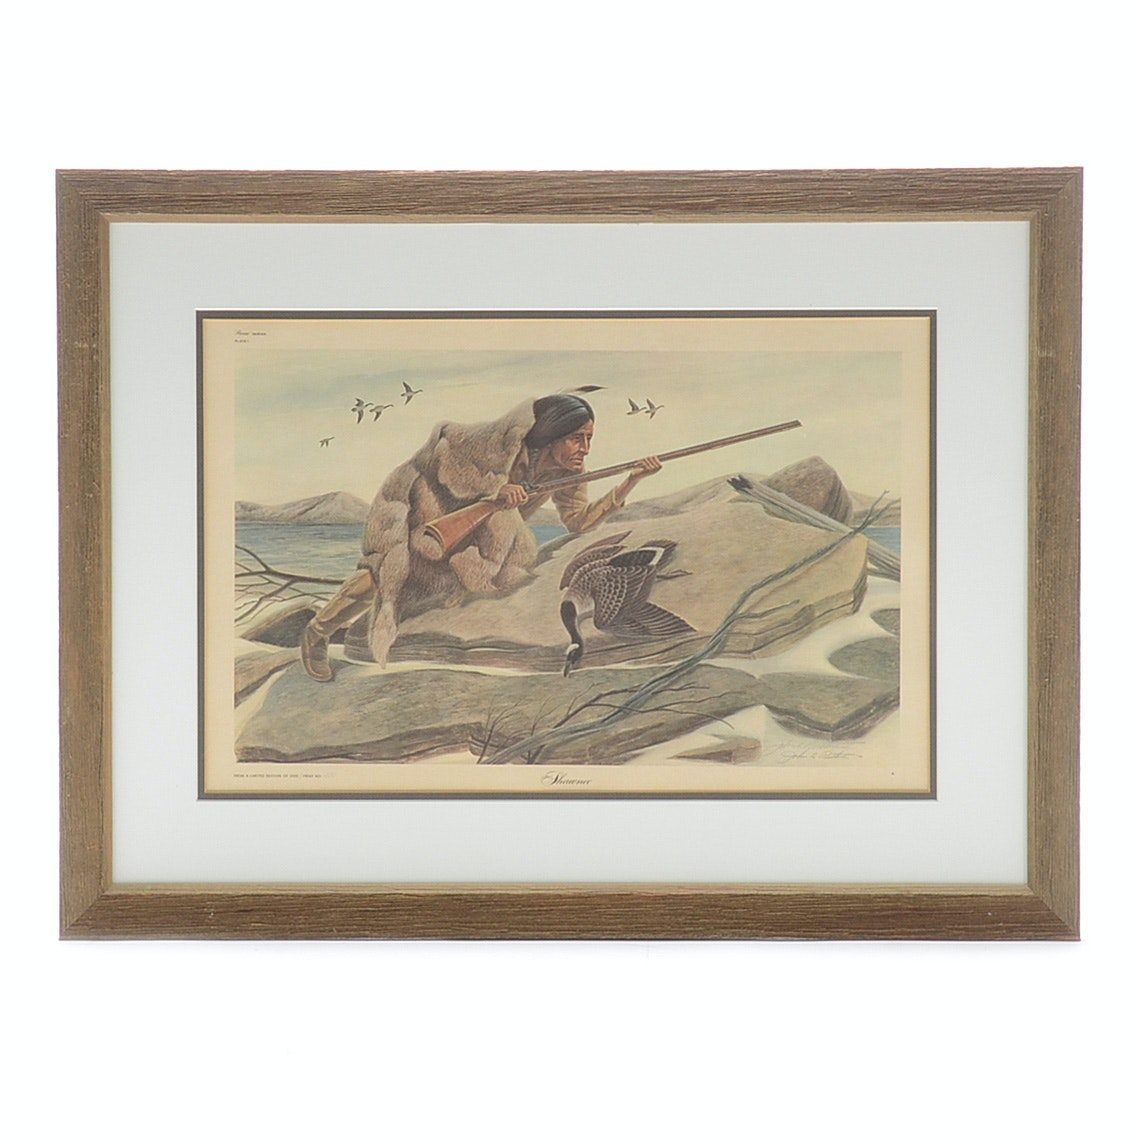 """John Ruthven Signed Limited Edition Offset Lithograph """"Shawnee"""""""